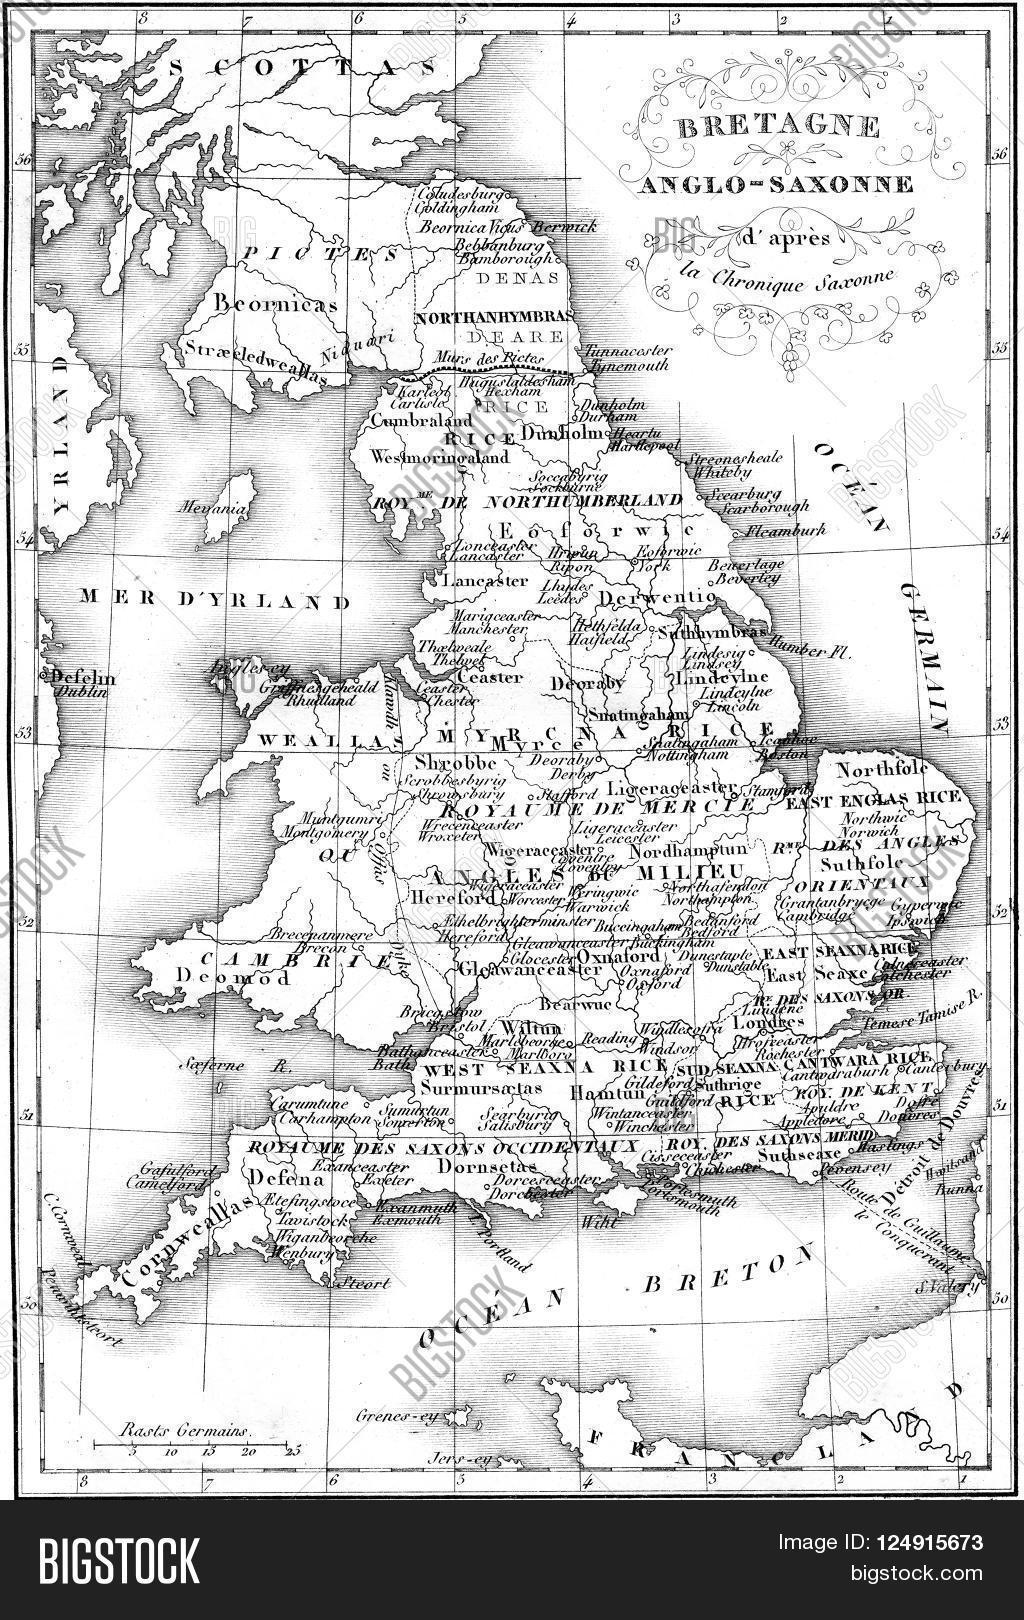 Anglo Saxon Map Of England.Britain Anglo Saxon Image Photo Free Trial Bigstock